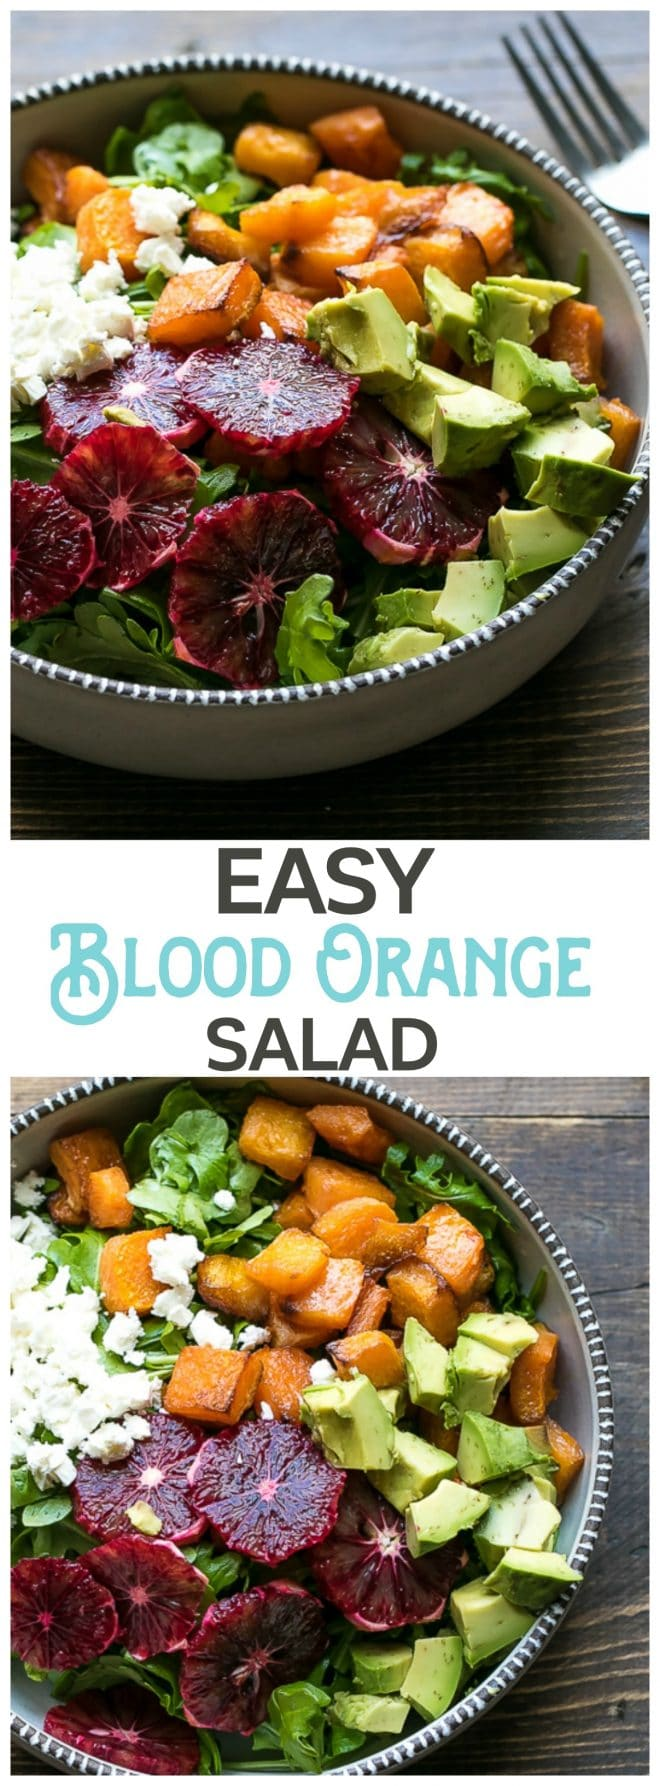 Roasted Butternut Squash And Blood Orange Salad